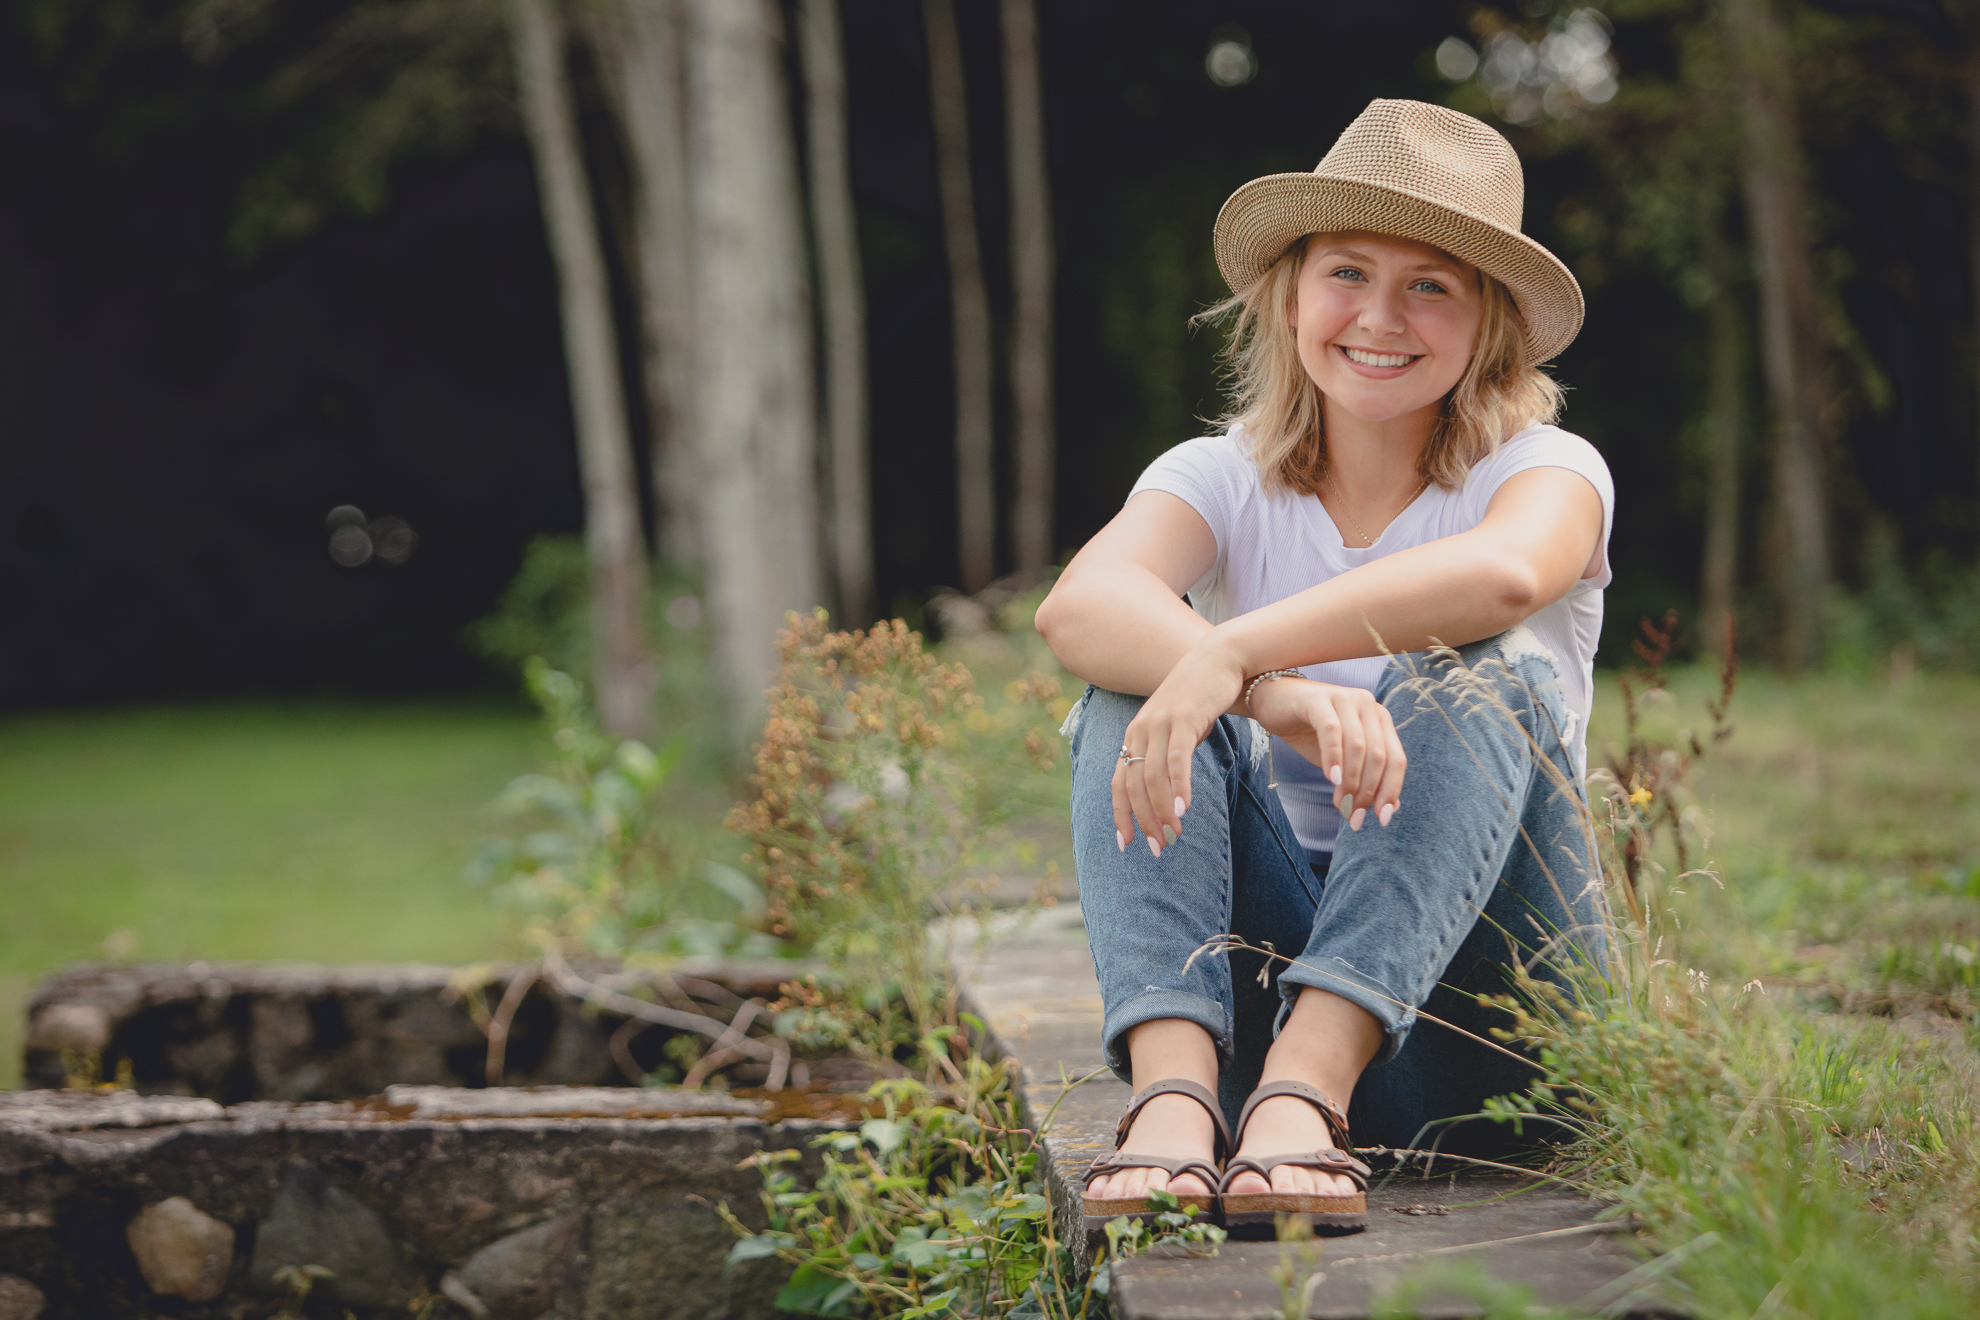 WNY senior smiles for photographer during portrait session at Long Point State Park on Lake Chautauqua in Bemus Point, NY